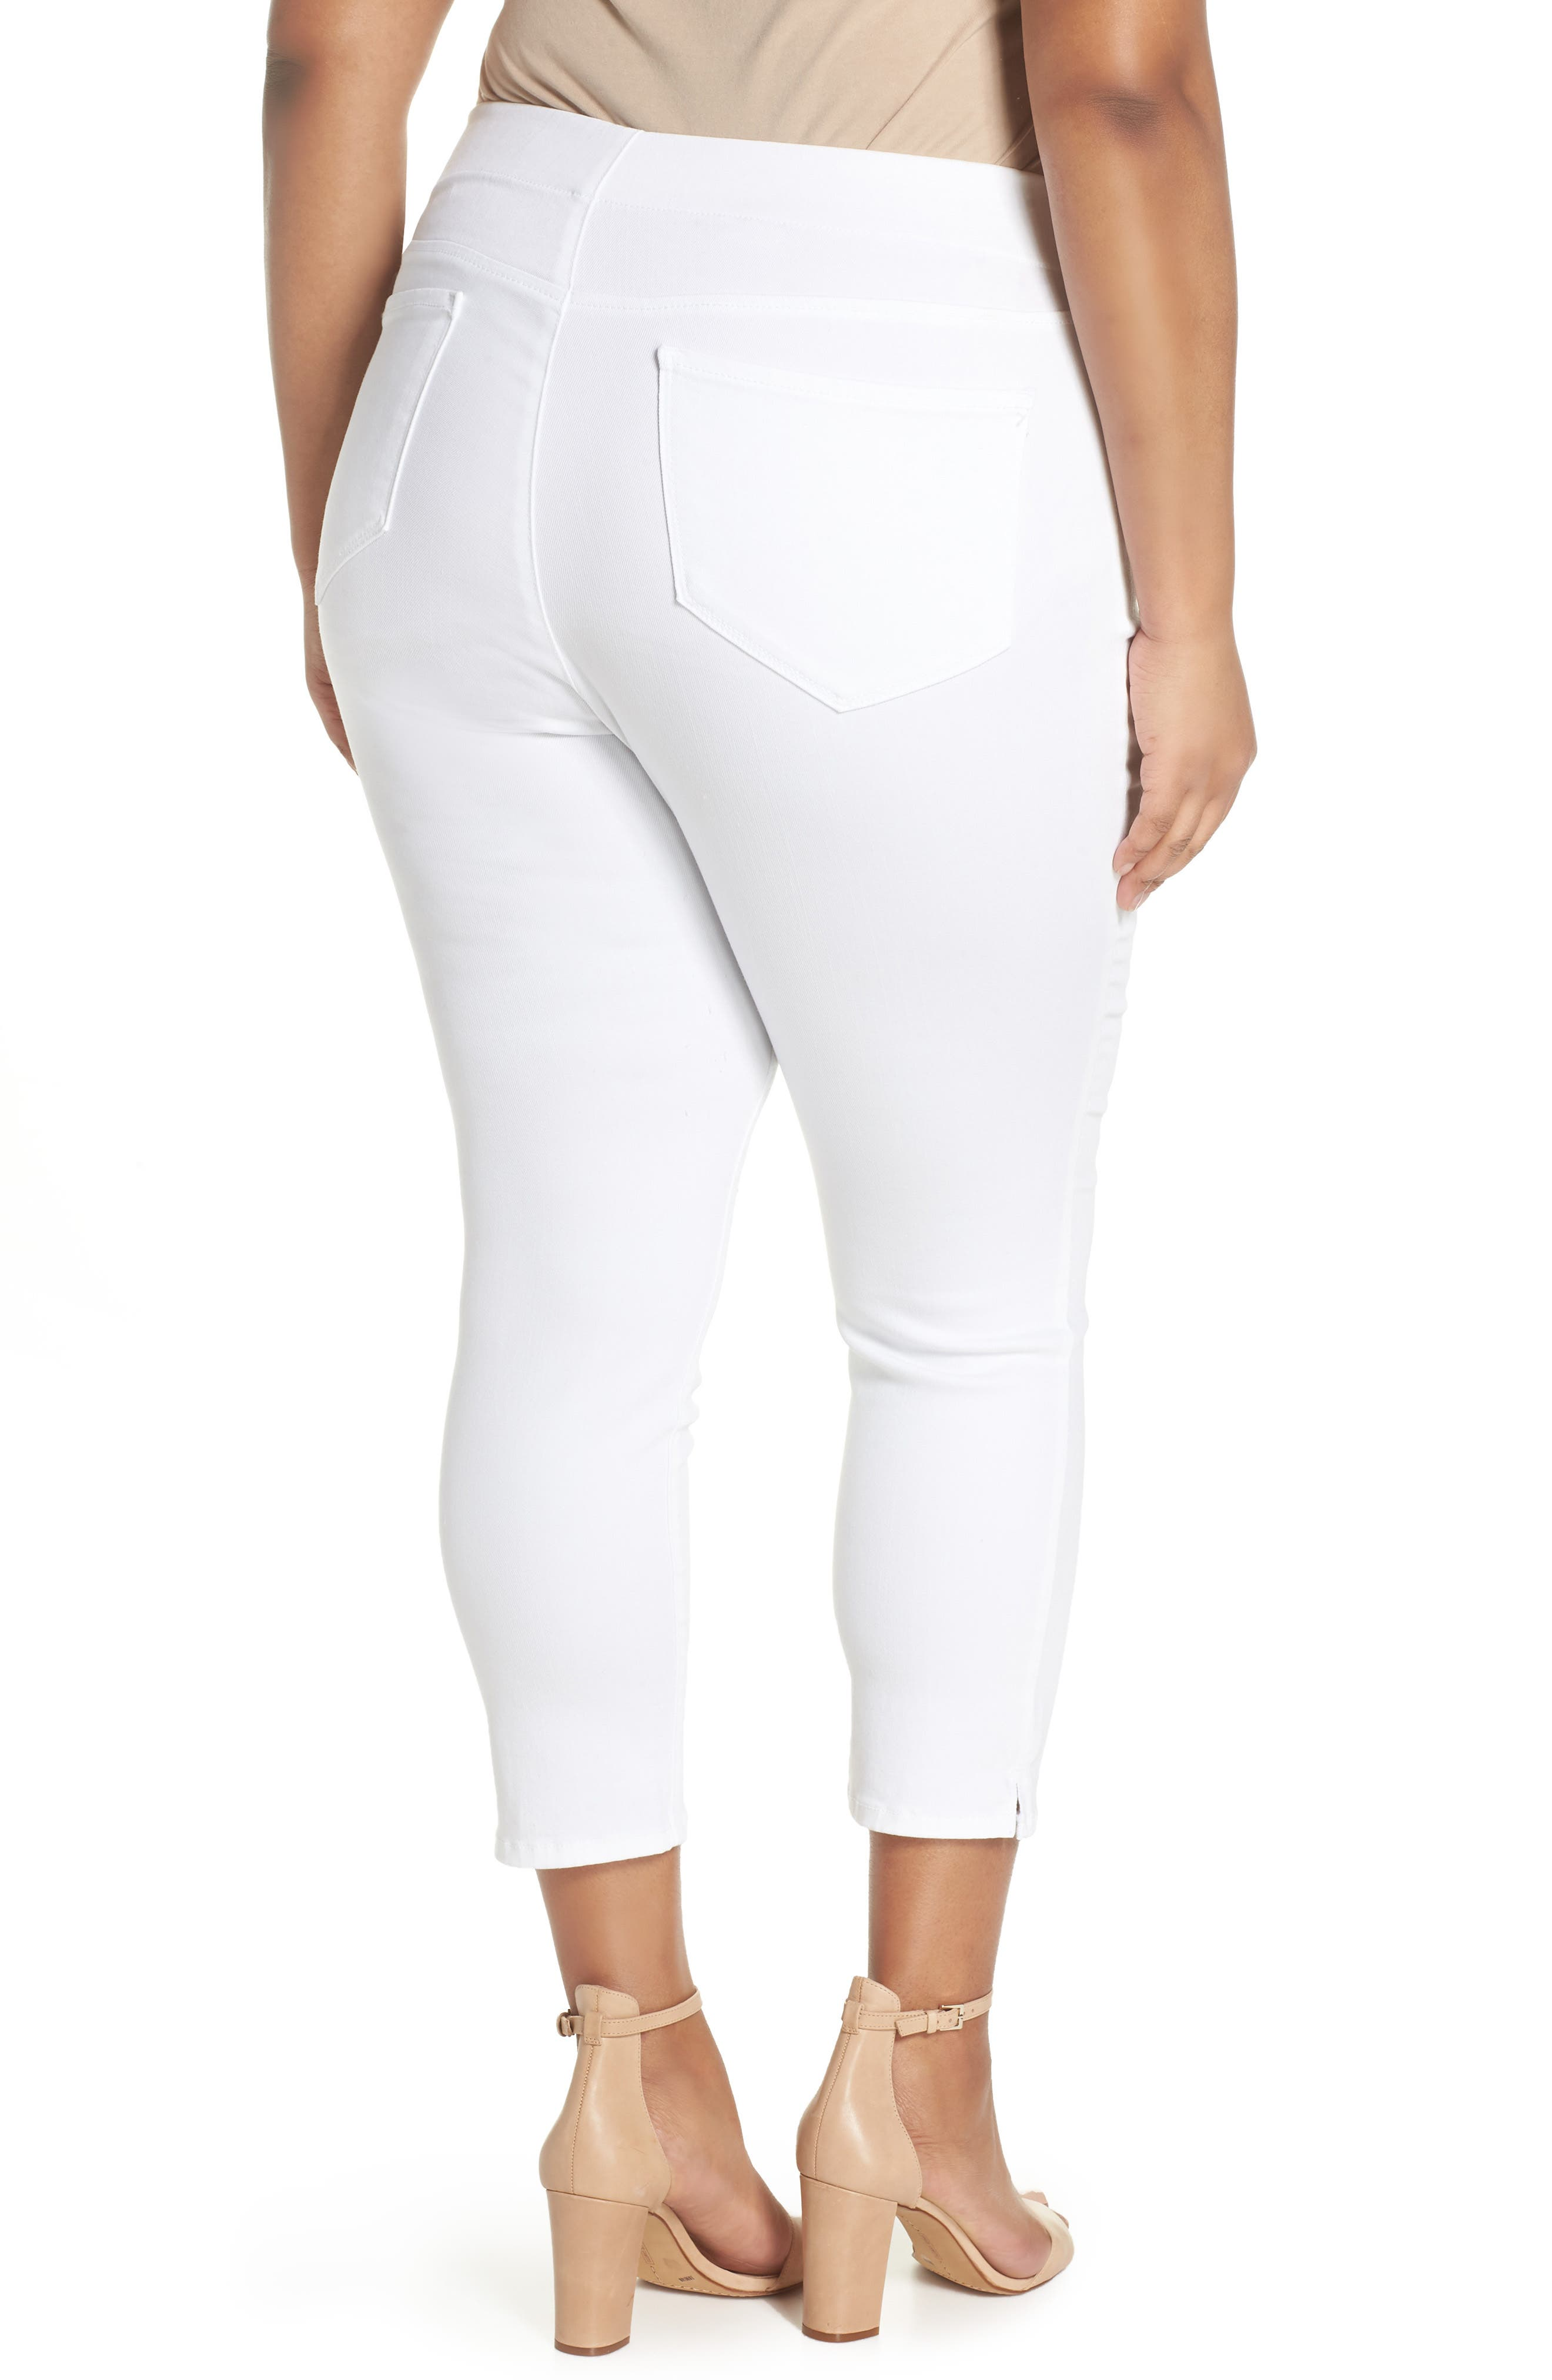 Alternate Image 2  - NYDJ Alina Pull-On Ankle Skinny Jeans (Endless White) (Plus Size)